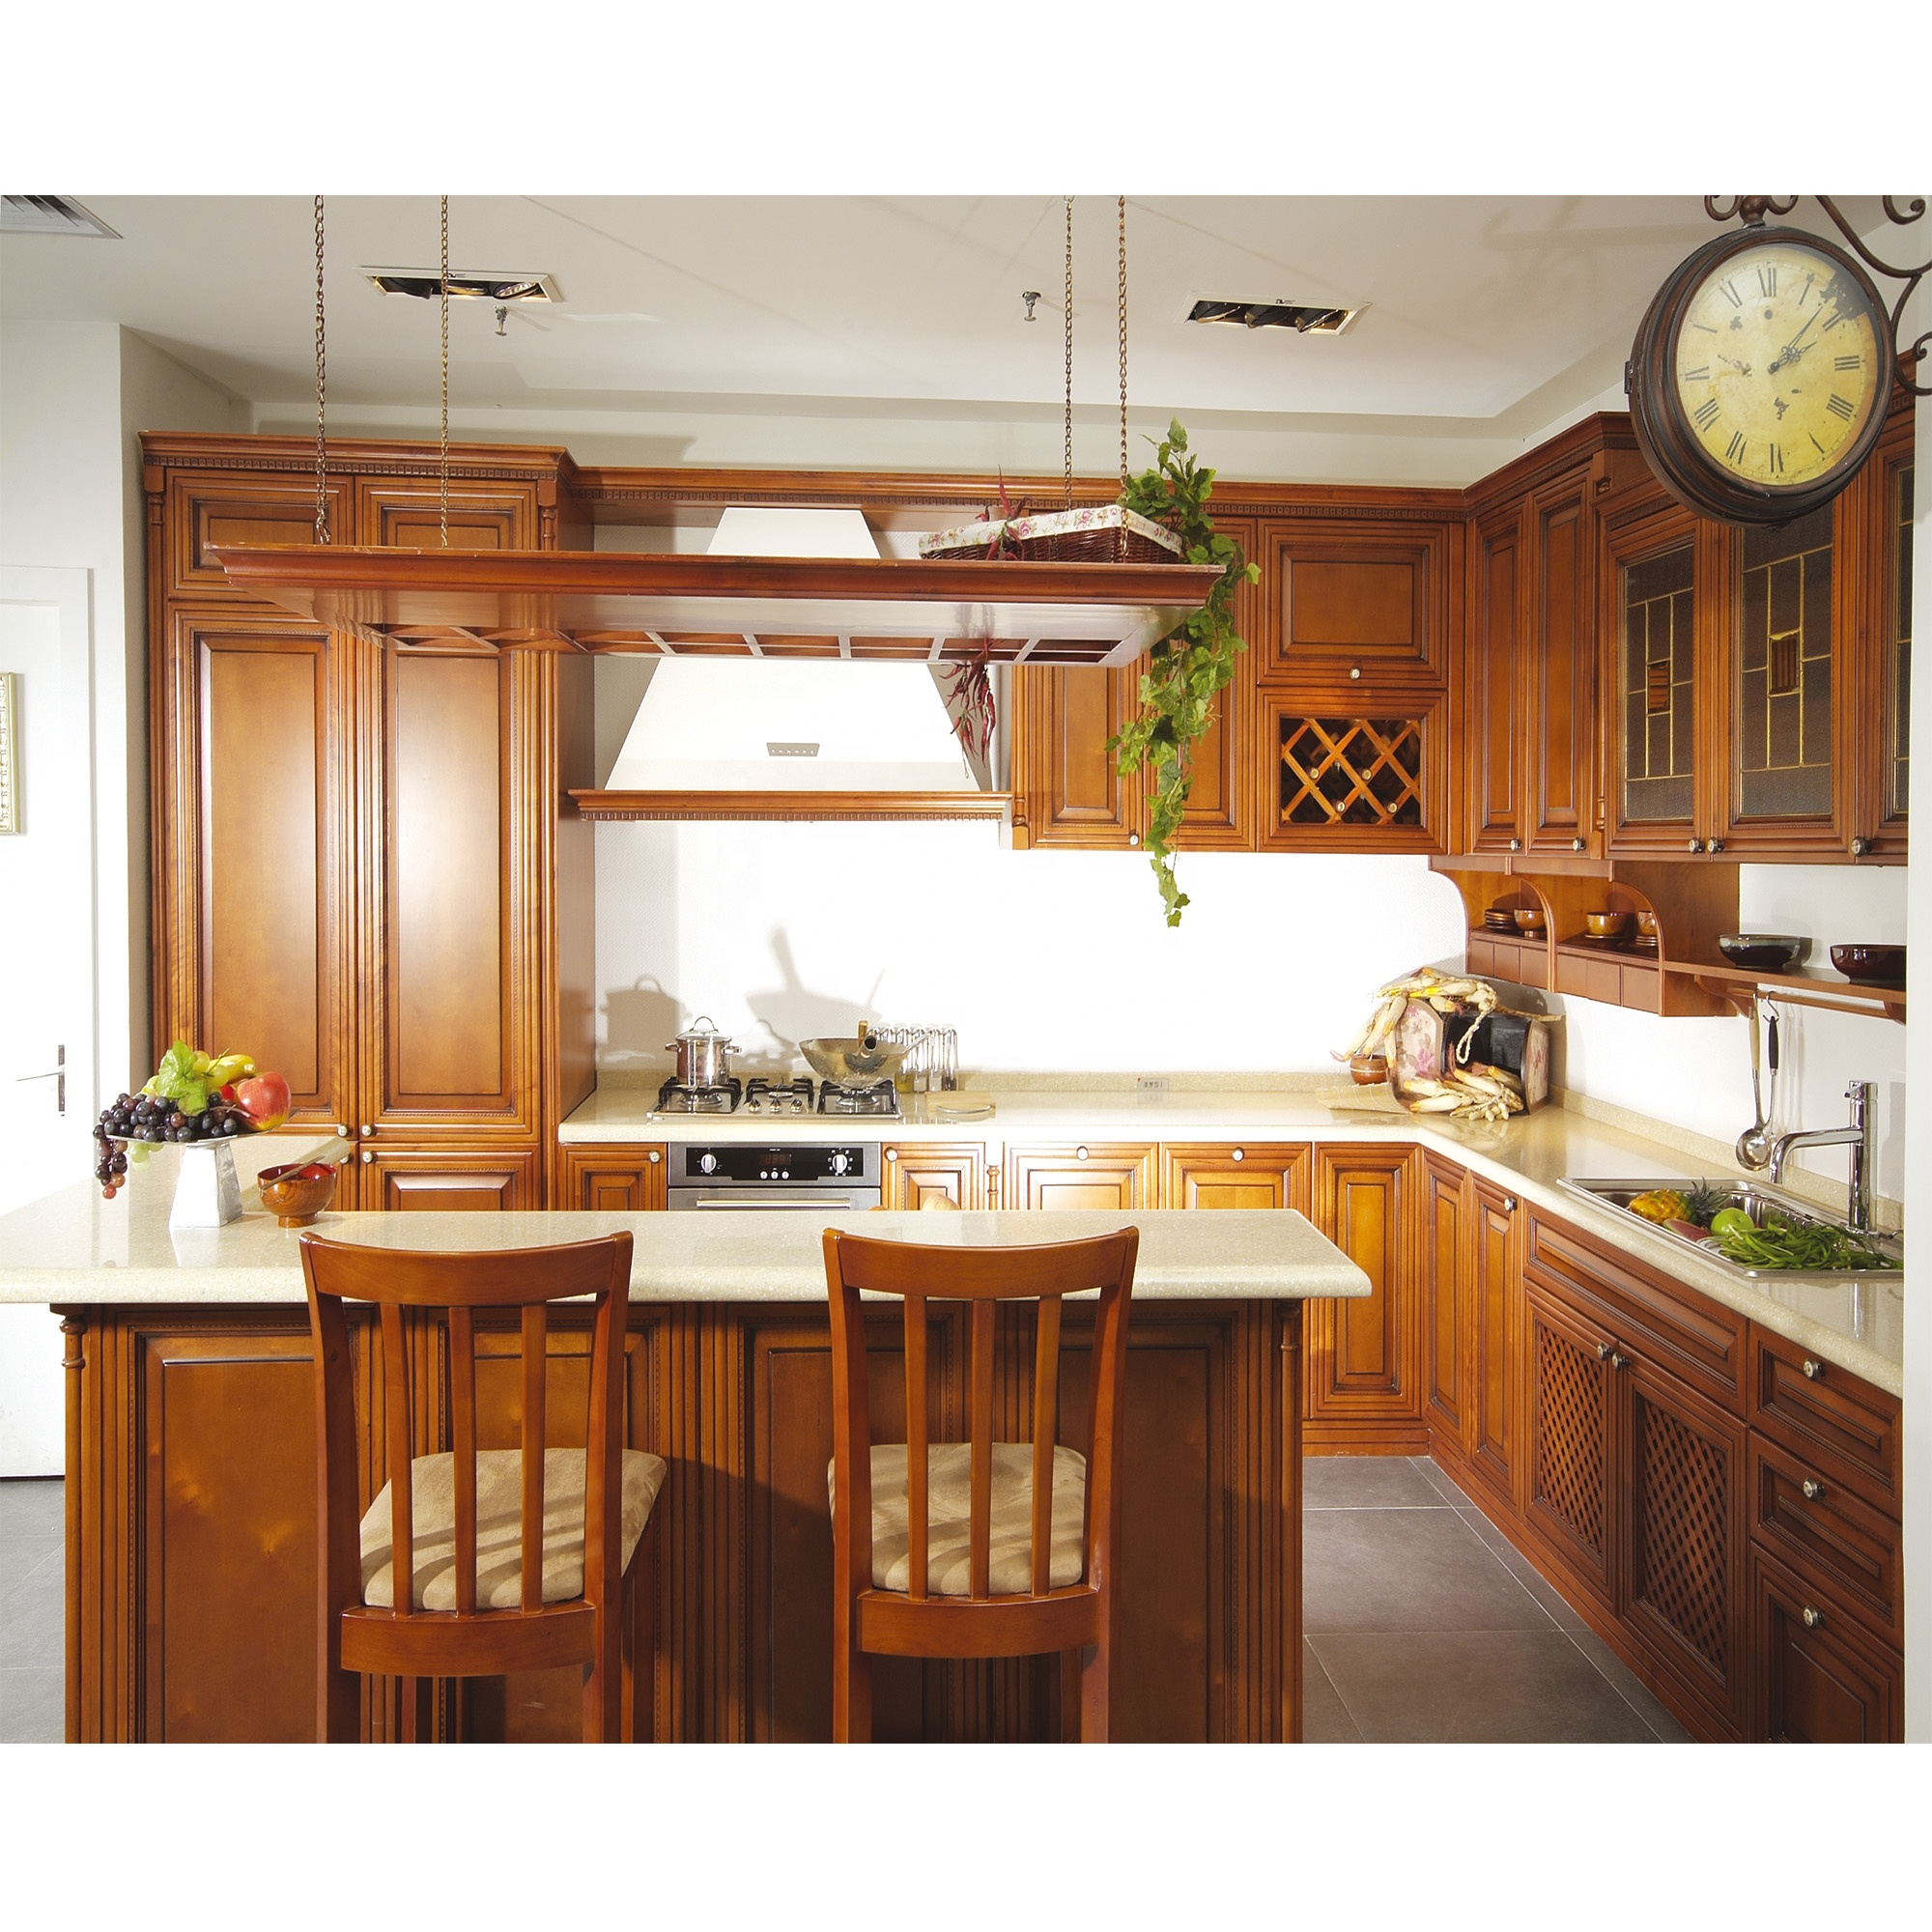 Nicocabinet Japanese Style Classic Brown Solid Wood Small Kitchen Cabinet Kitchen Unit With Island Buy Kitchen Design Kitchen Cupboard Kitchen Unit